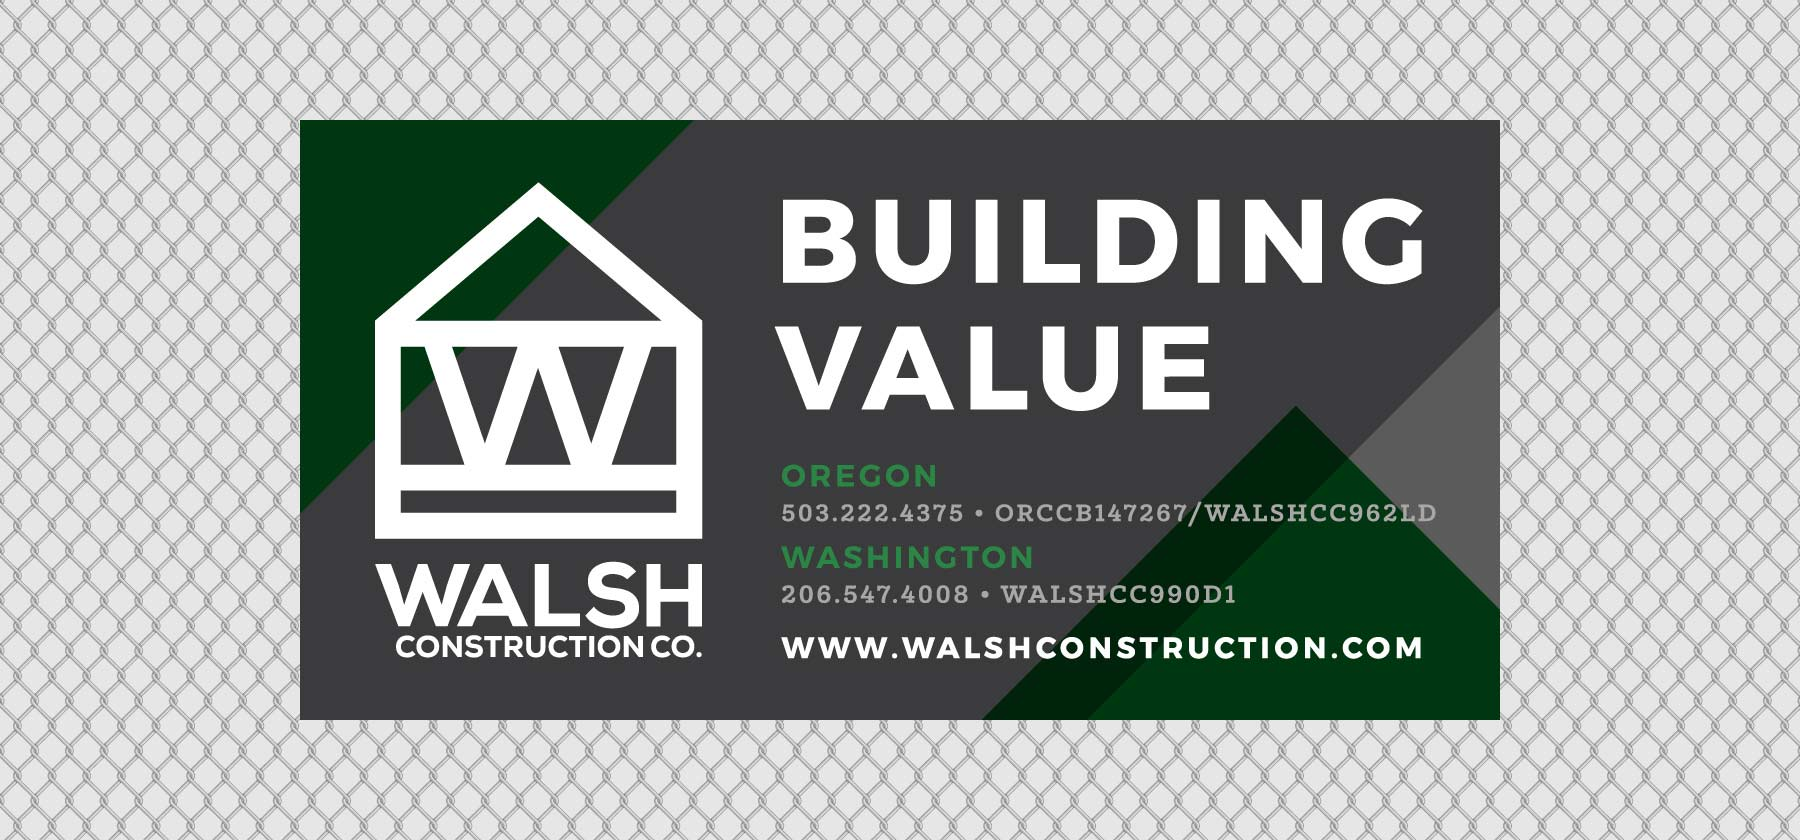 WALSH-Construction-Banner.jpg